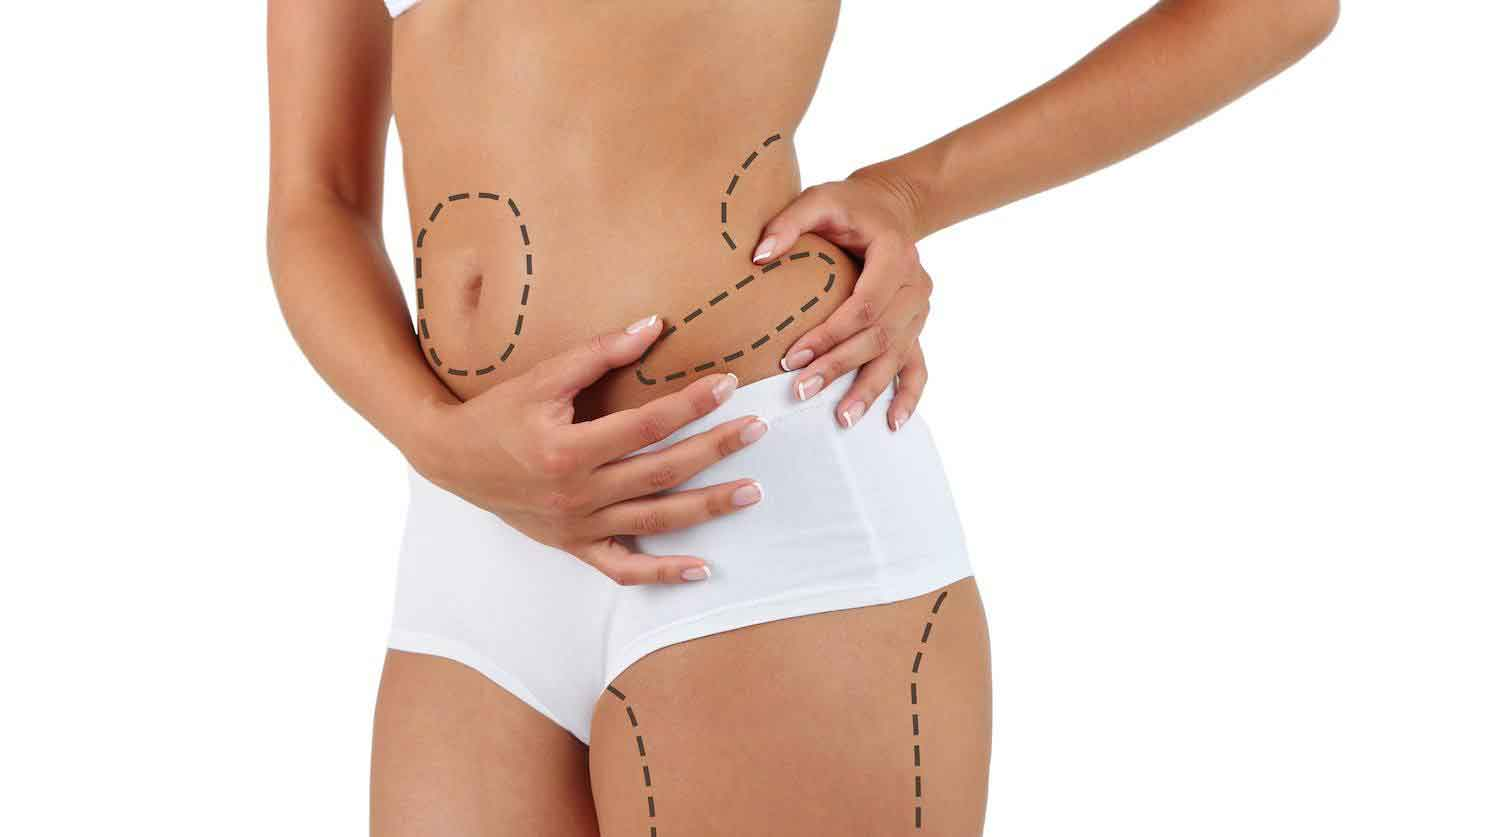 How much does it cost for liposuction 3